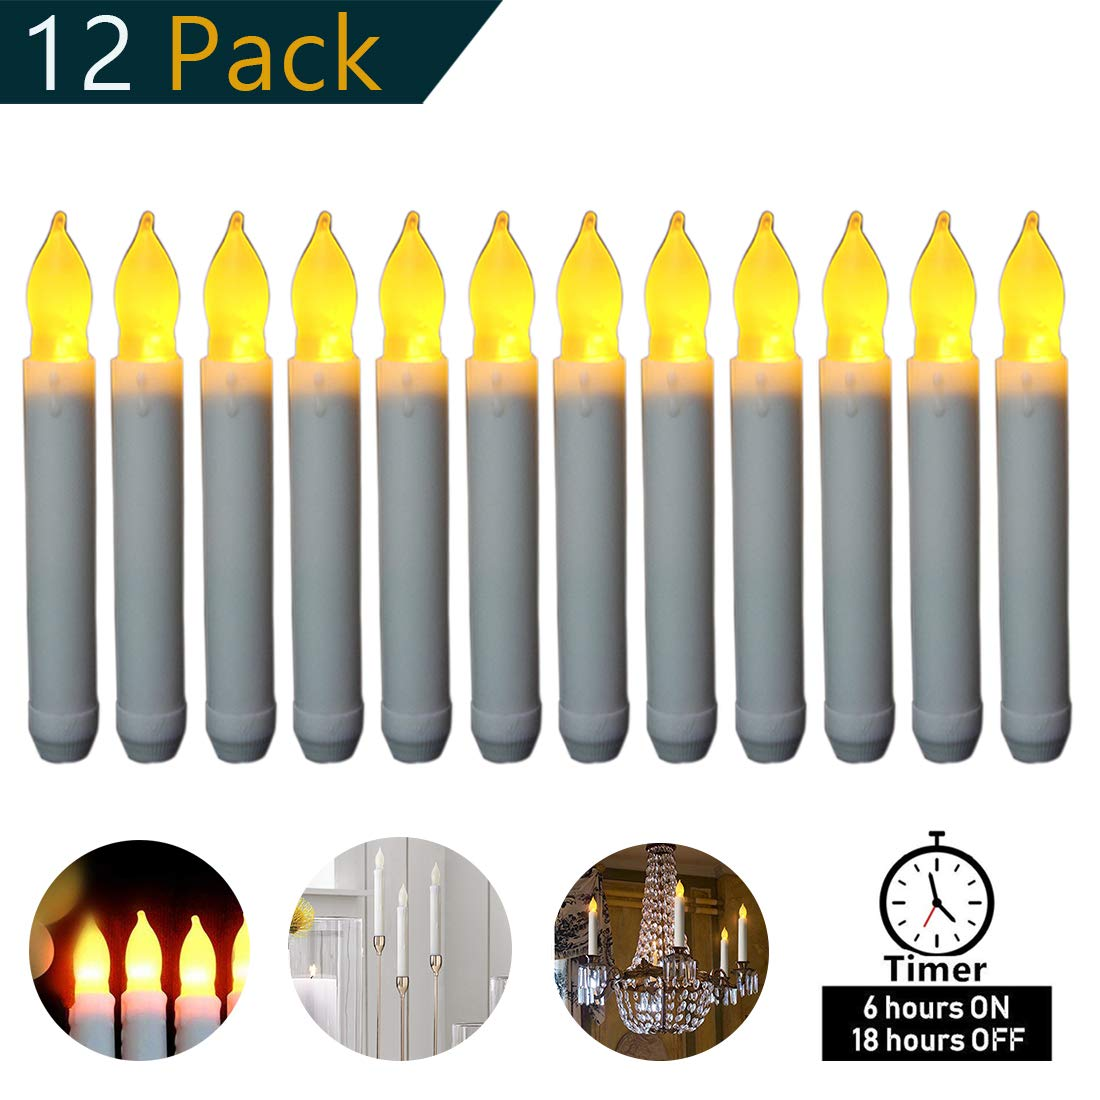 Micandle Set of 12 Yellow Mini Battery Operated Wax Dipped White Body LED Taper Candles, Flameless Taper Candles for Wedding, Halloween, -Batteries Not Included -(Amber Flickering Long Light Bulbs)